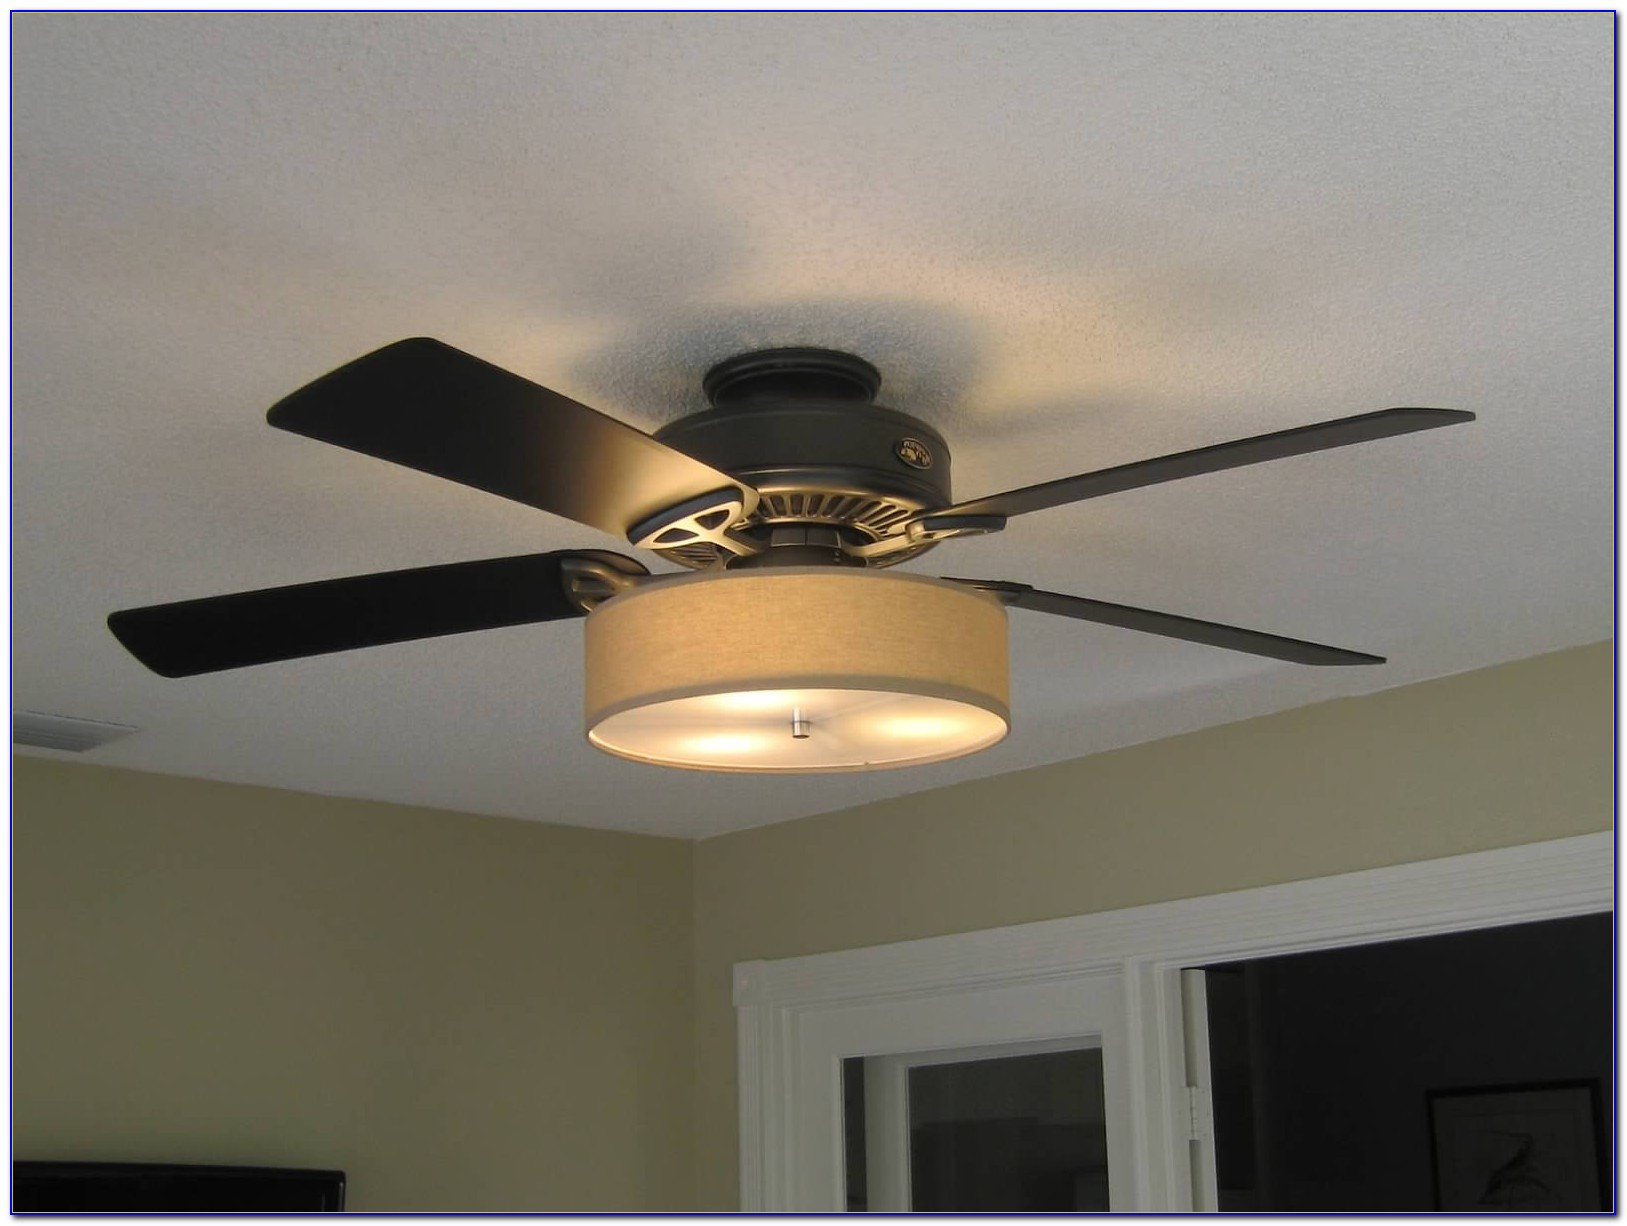 Hampton Bay Ceiling Fan Fluorescent Light Bulbs